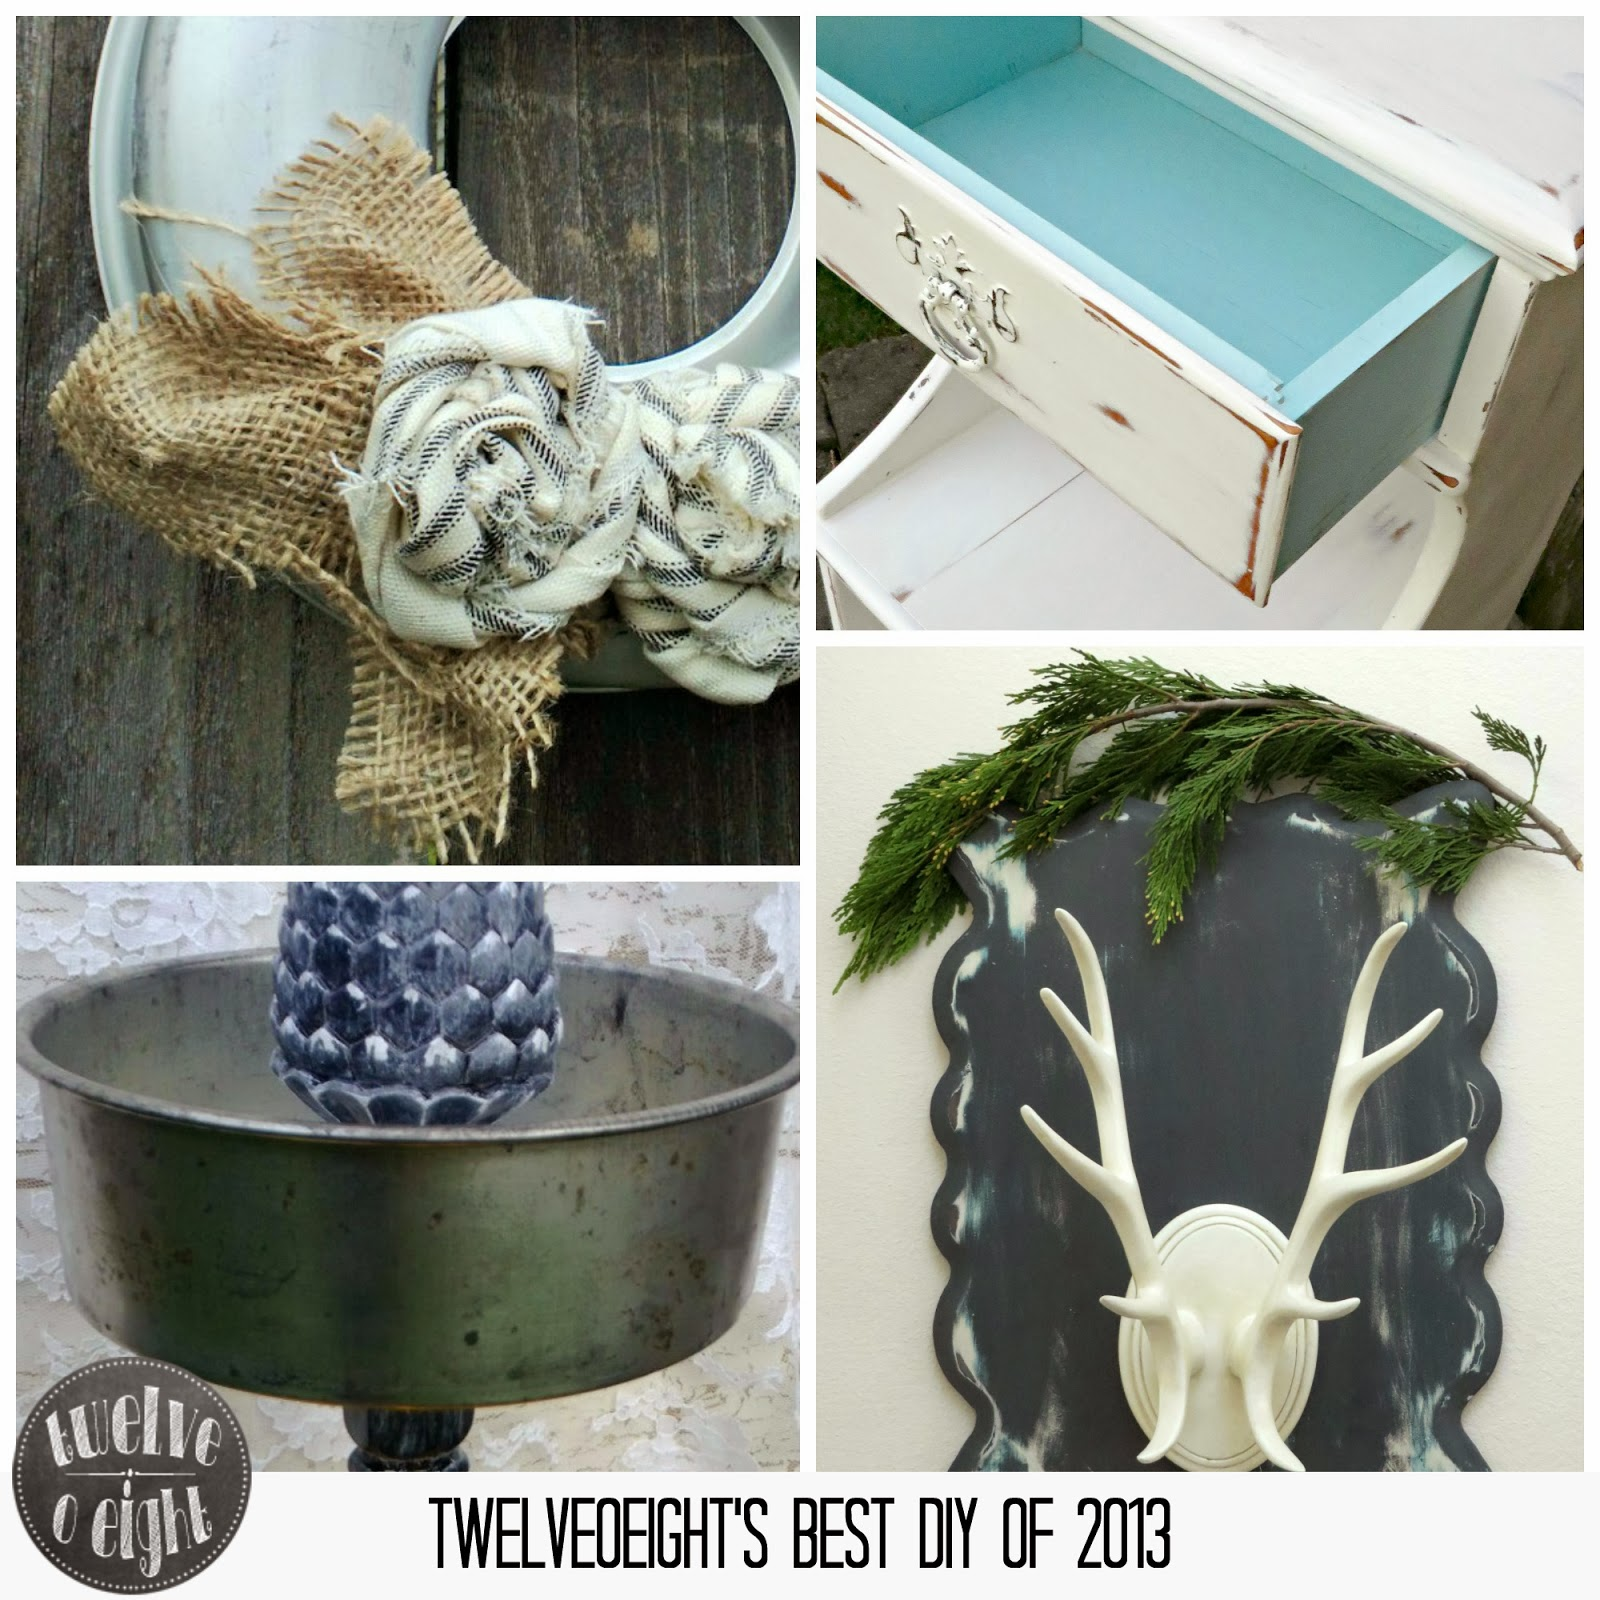 Craft Home Decor: Favorite Recipes 2013